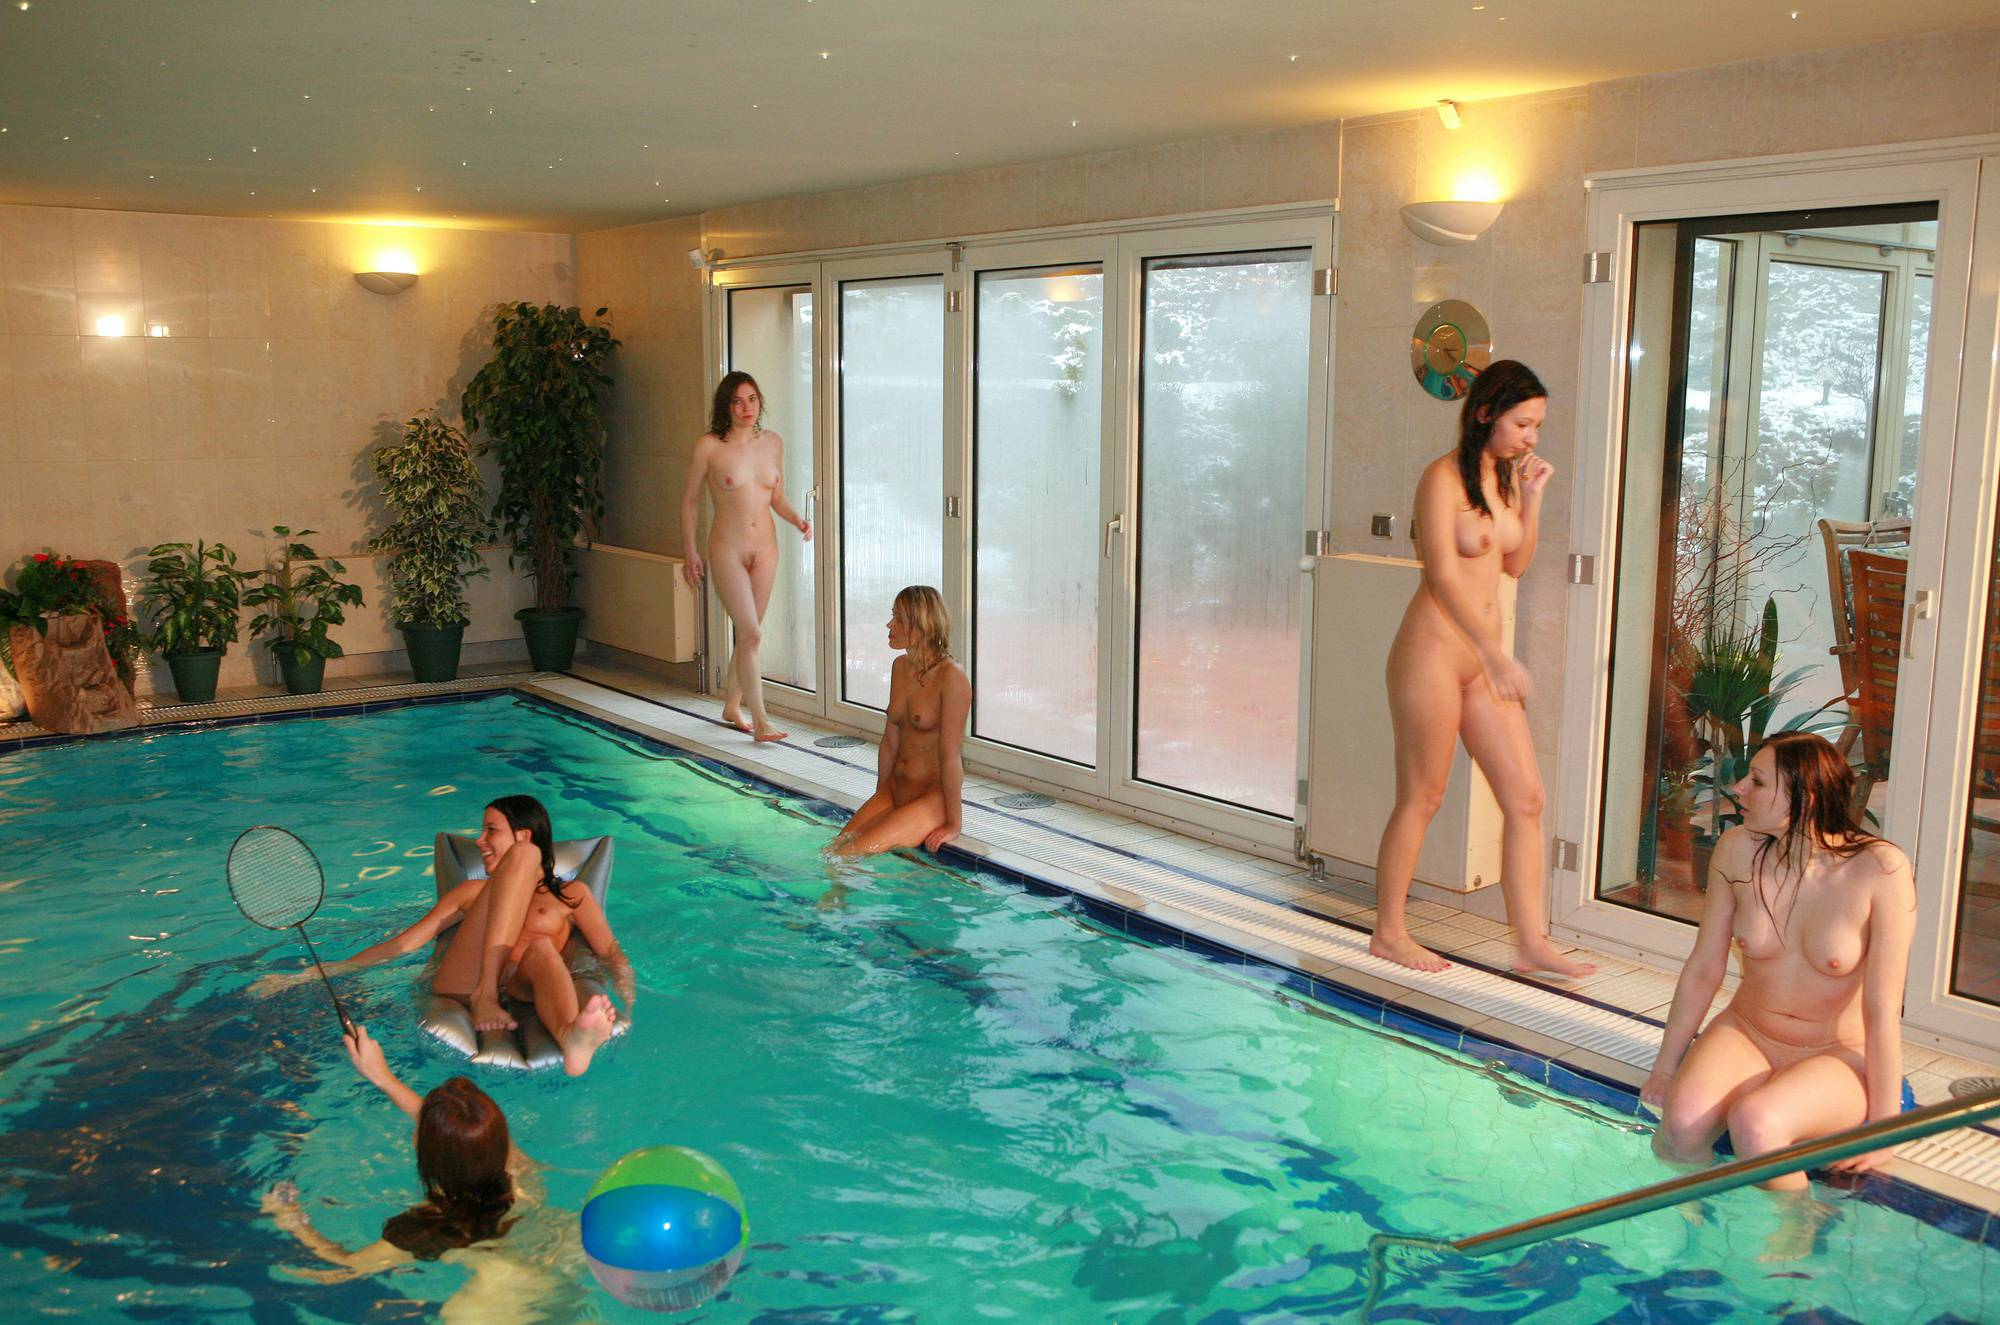 Pure Nudism Images Girls Pool Party Basin - 1